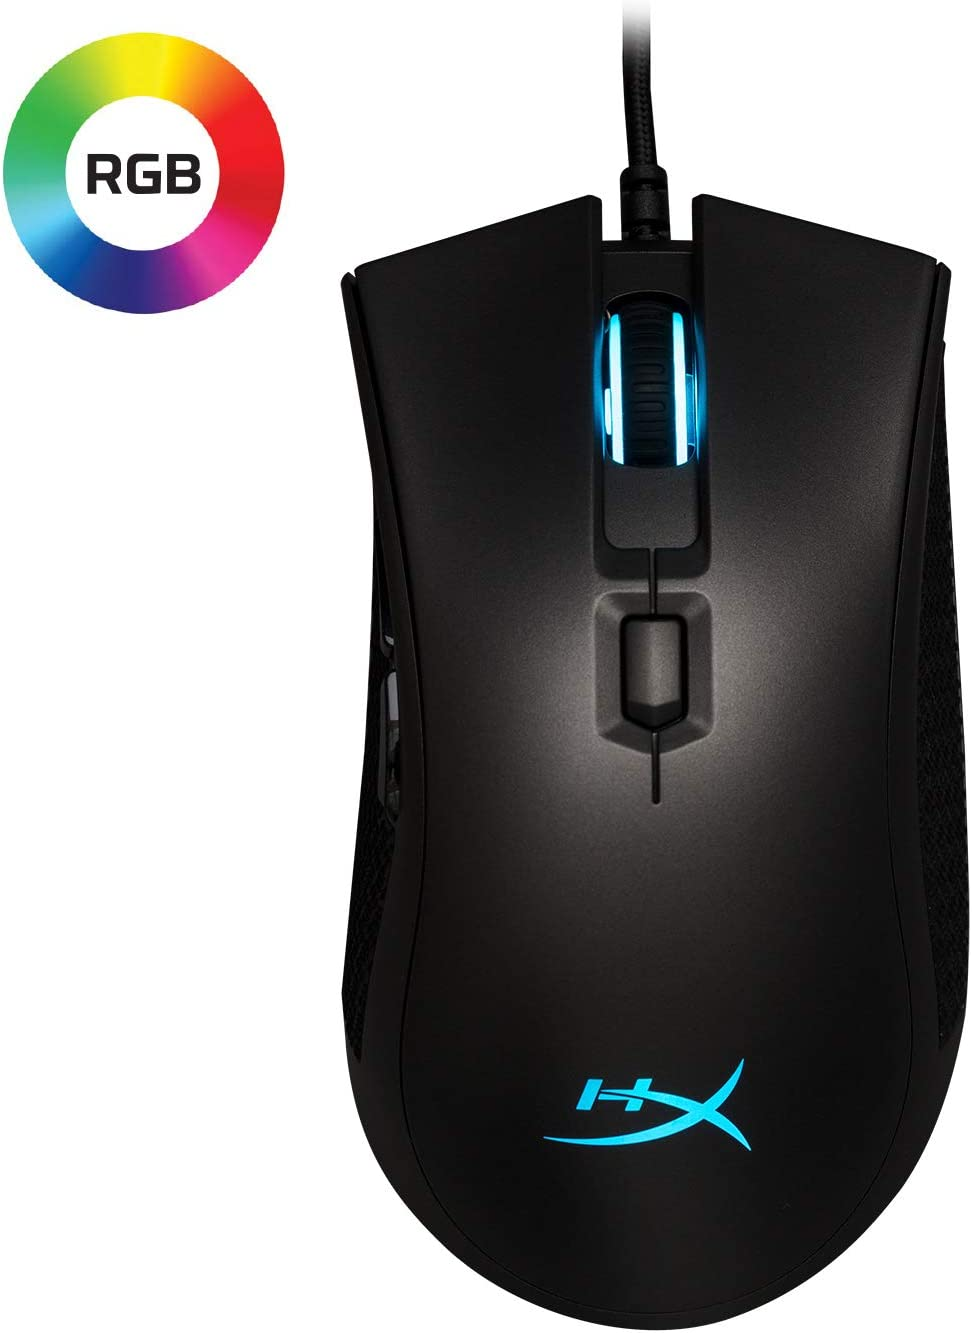 Amazon Com Hyperx Pulsefire Fps Pro Gaming Mouse Software Controlled Rgb Light Effects Macro Customization Pixart 3389 Sensor Up To 16 000 Dpi 6 Programmable Buttons Mouse Weight 95g Computers Accessories